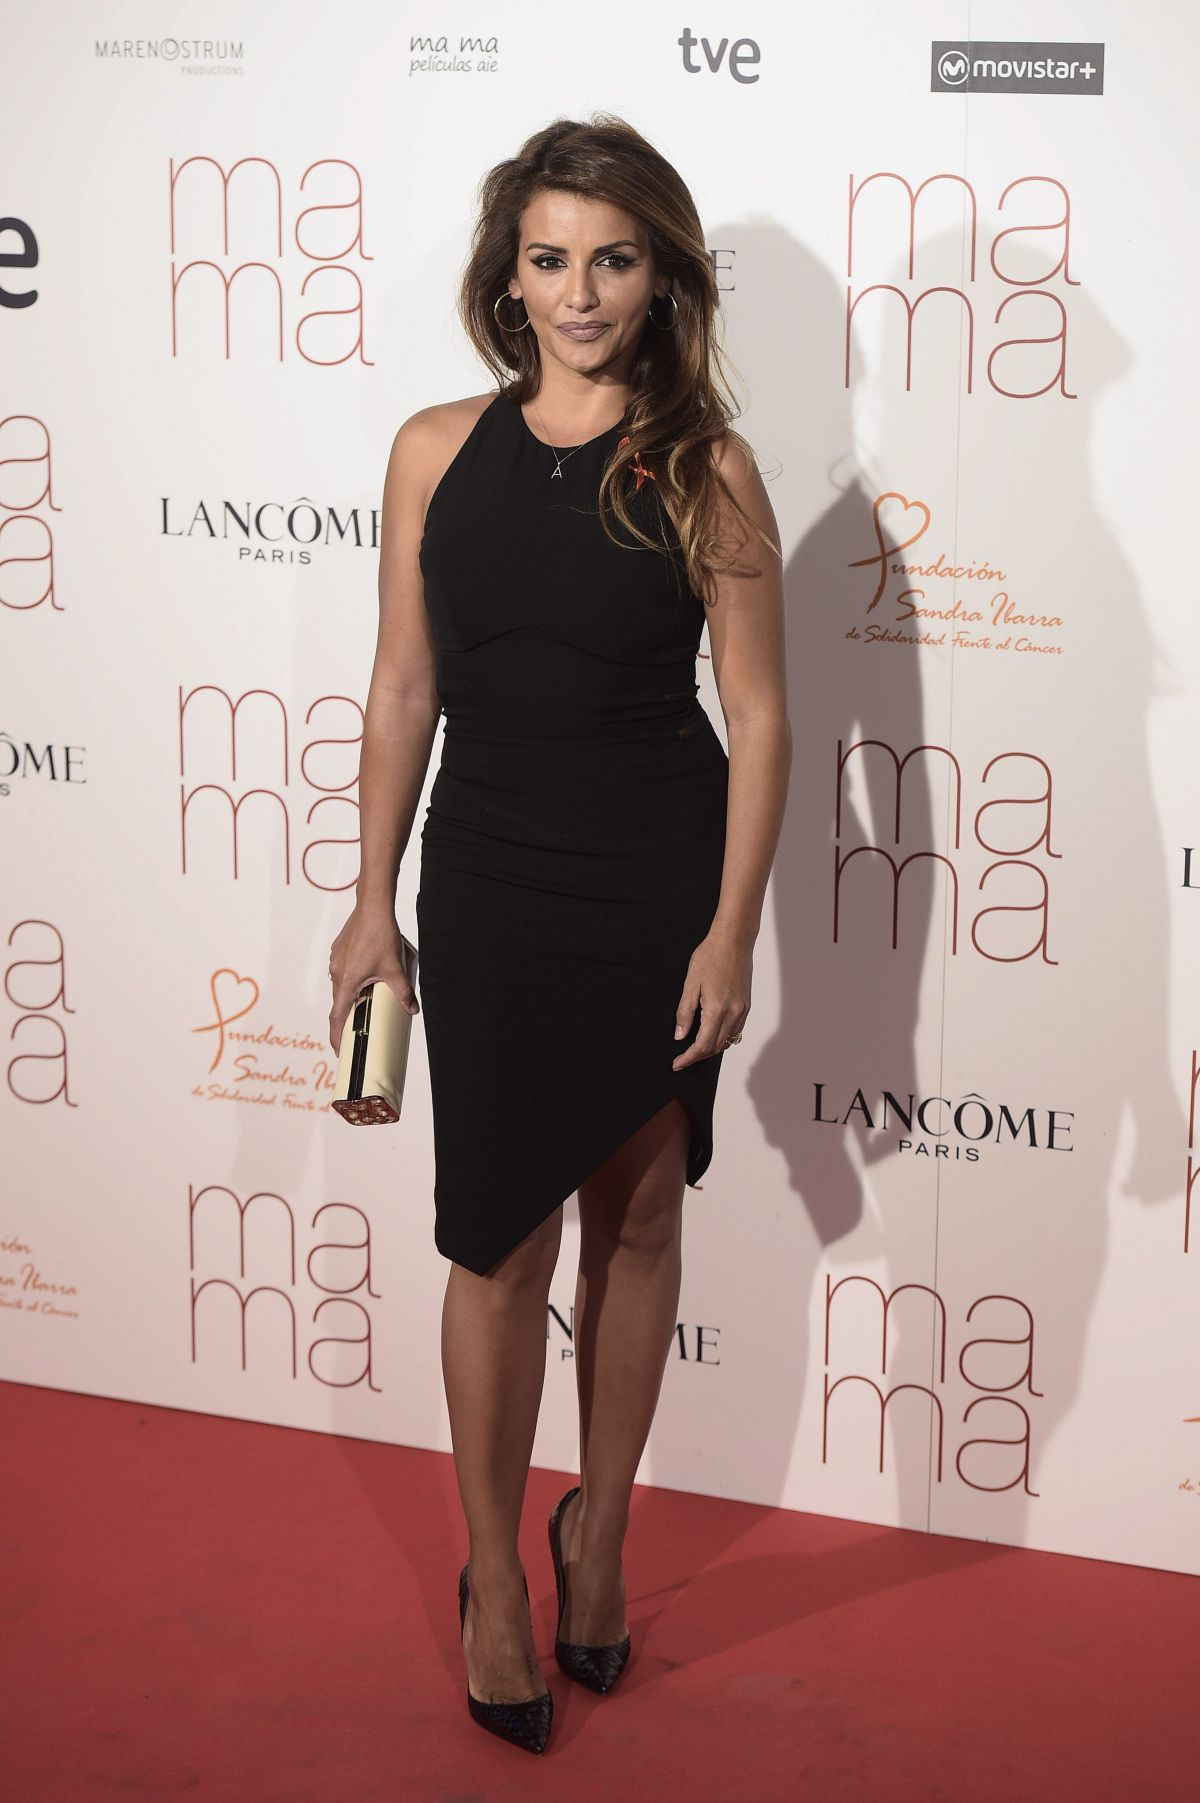 Monica Cruz At Ma Ma Premiere In Madrid 09 09 2015